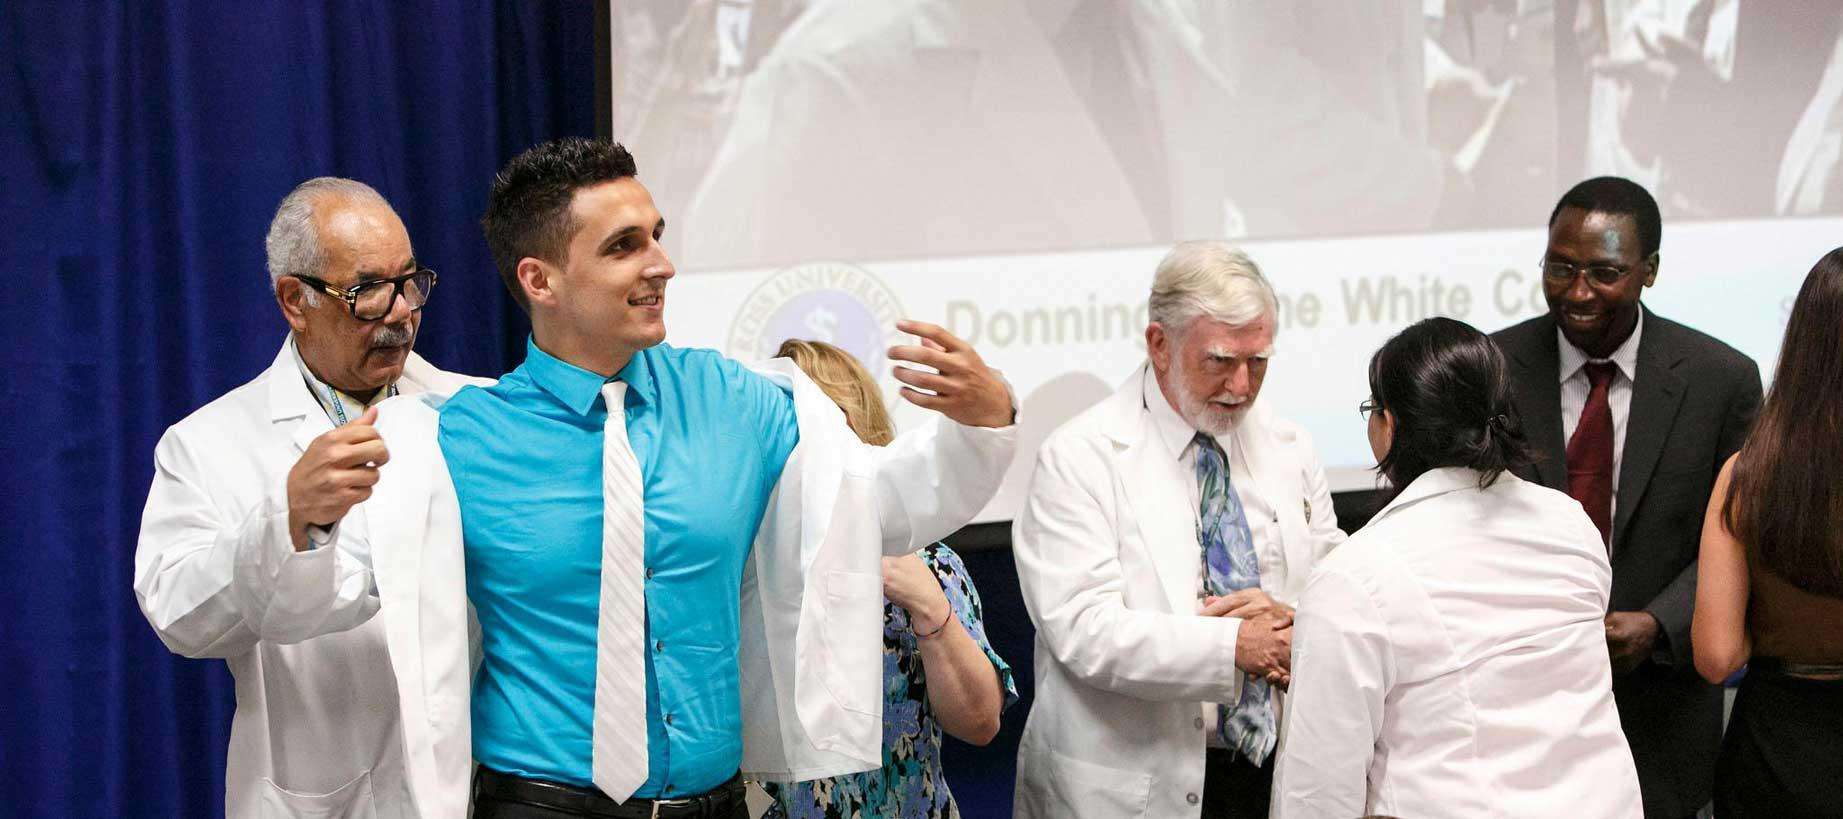 Ross University School of Medicine white coat ceremony